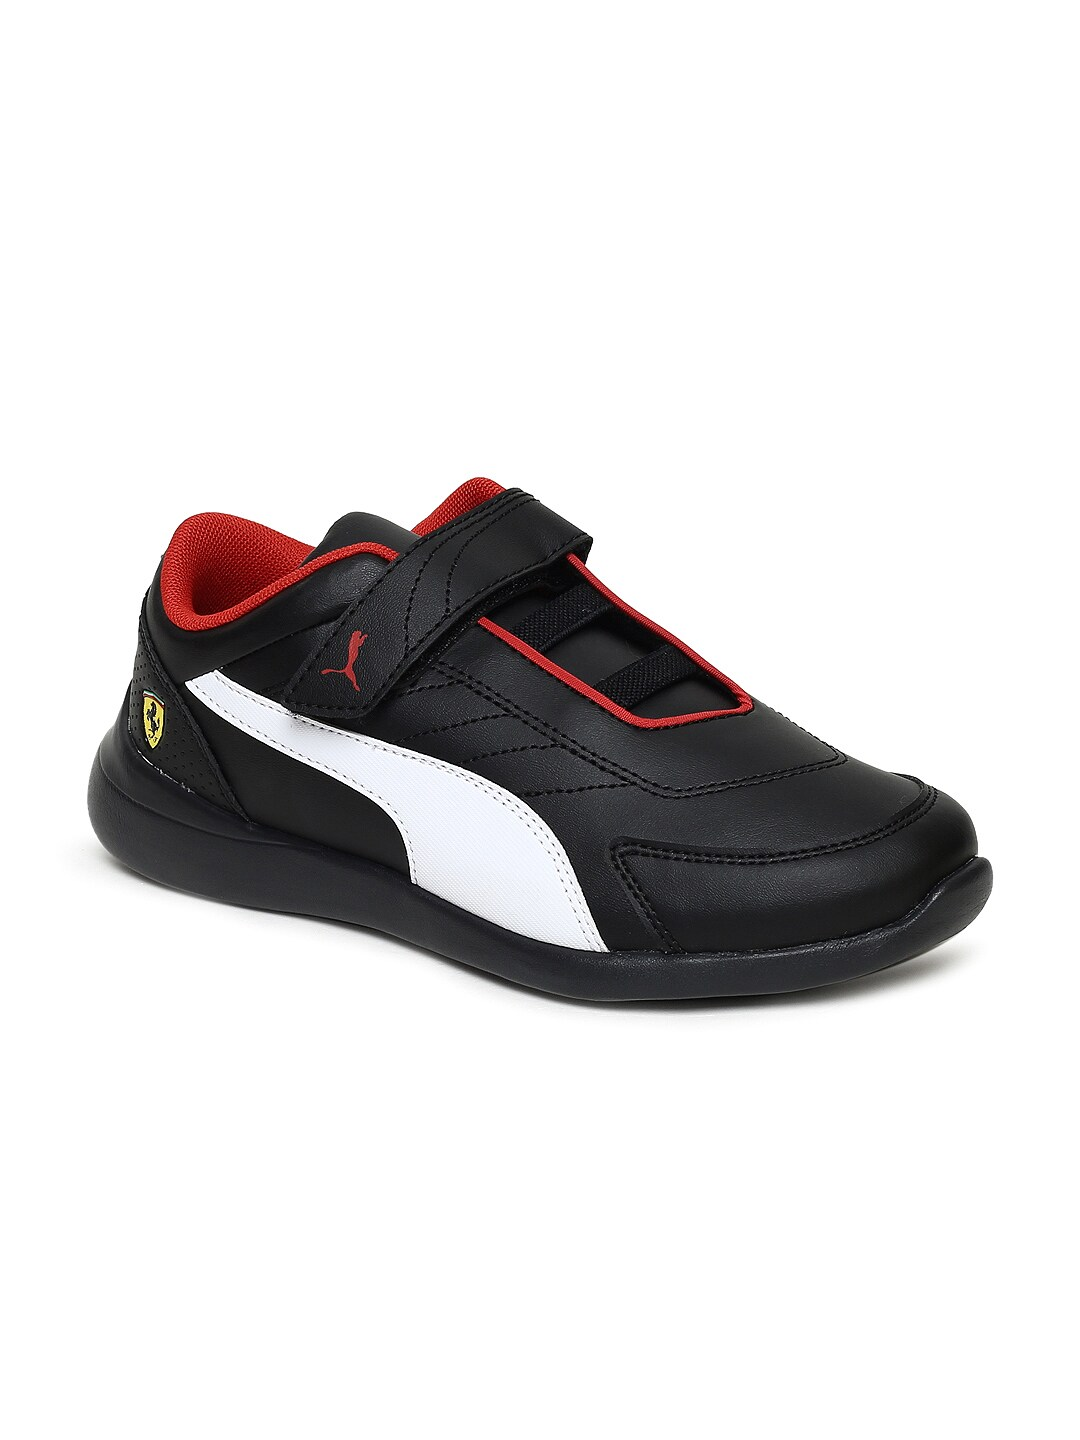 fa5a25193913 Puma Valorosso Sf V Kids Black Sneakers for girls in India - Buy at ...